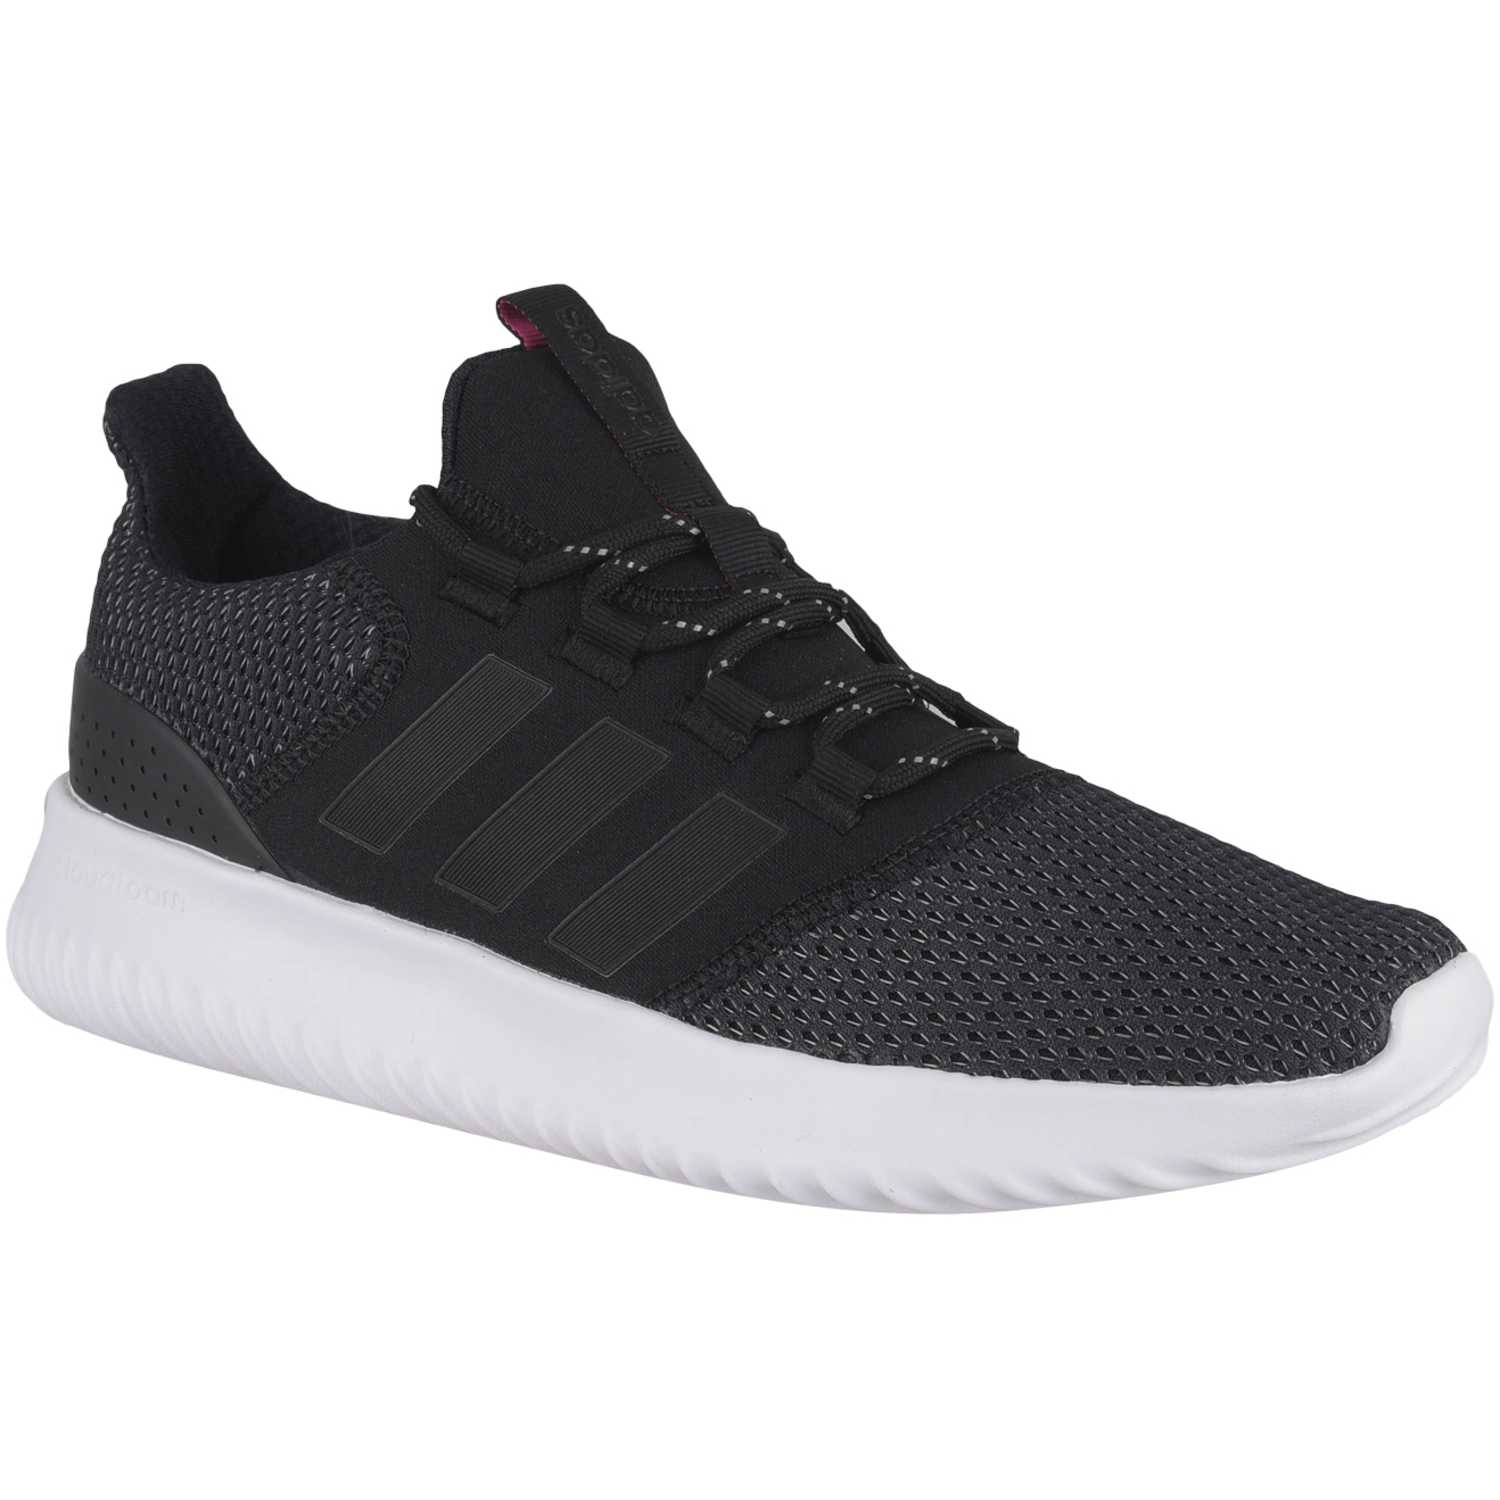 the best attitude 94ecb 7d533 Zapatilla de Hombre Adidas Negro cloudfoam ultimate